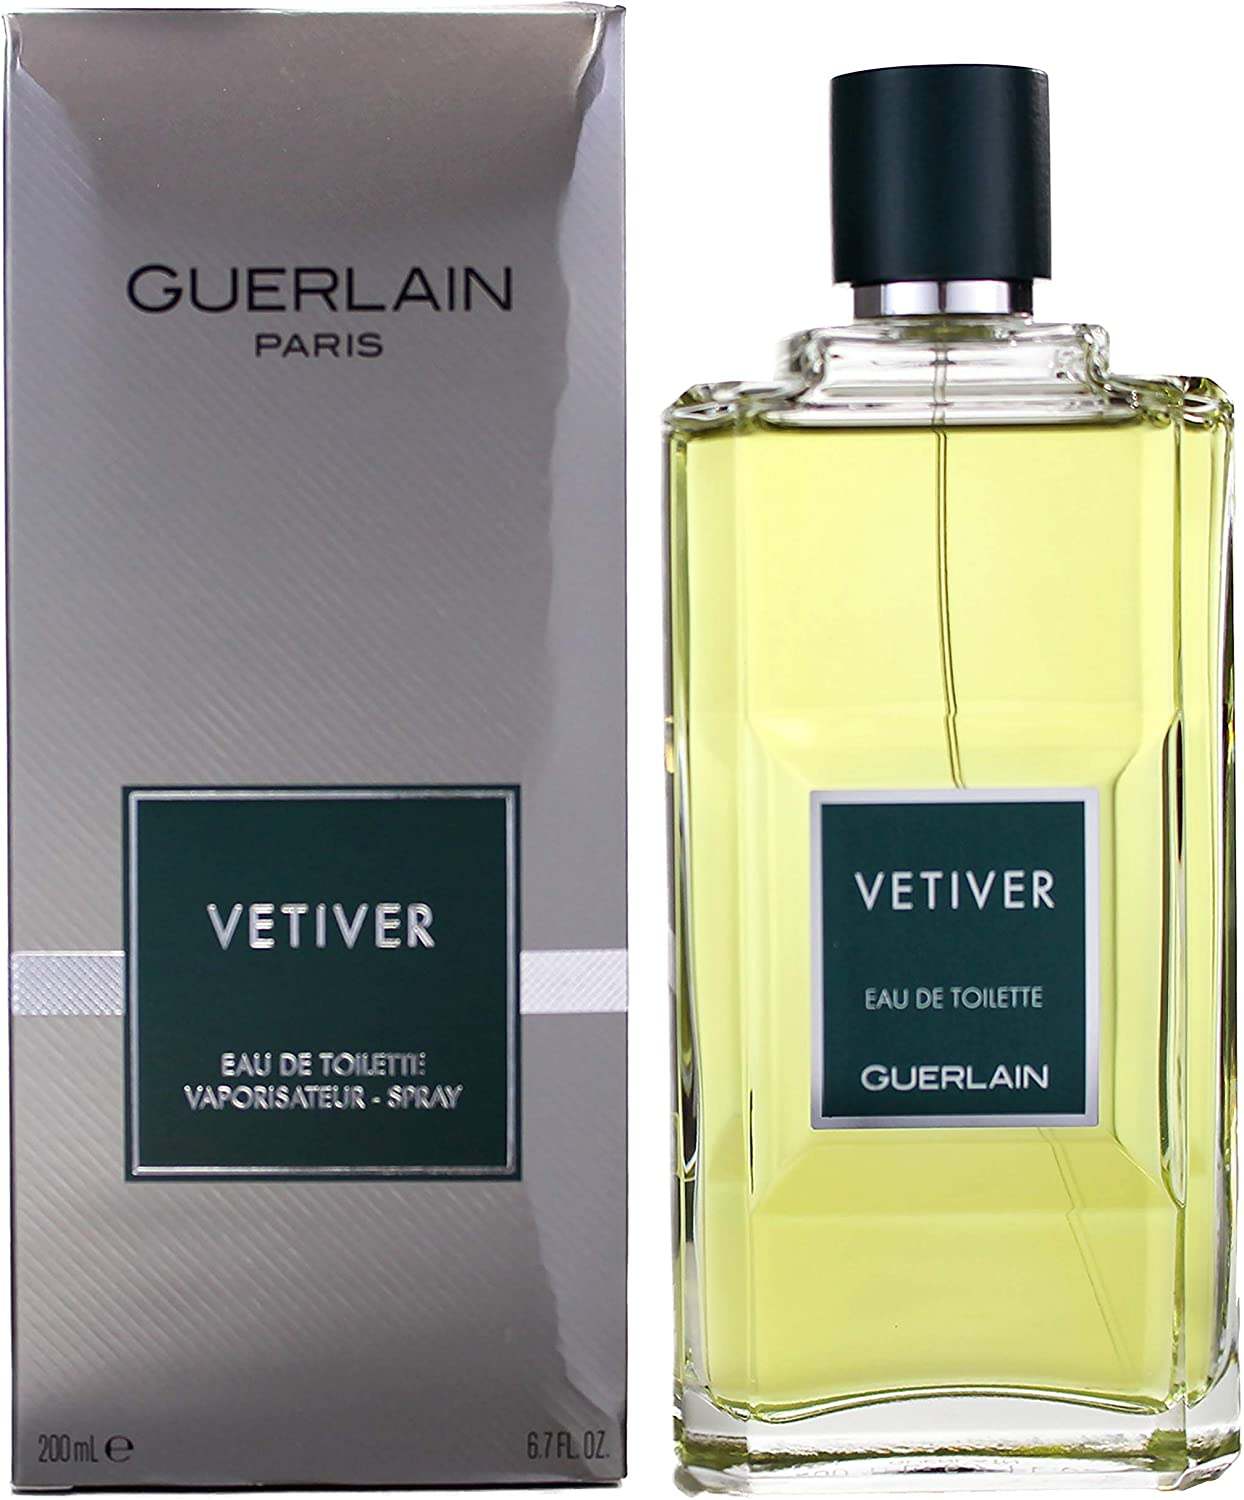 Guerlain Eau de Toilette Vetiver 200 ml